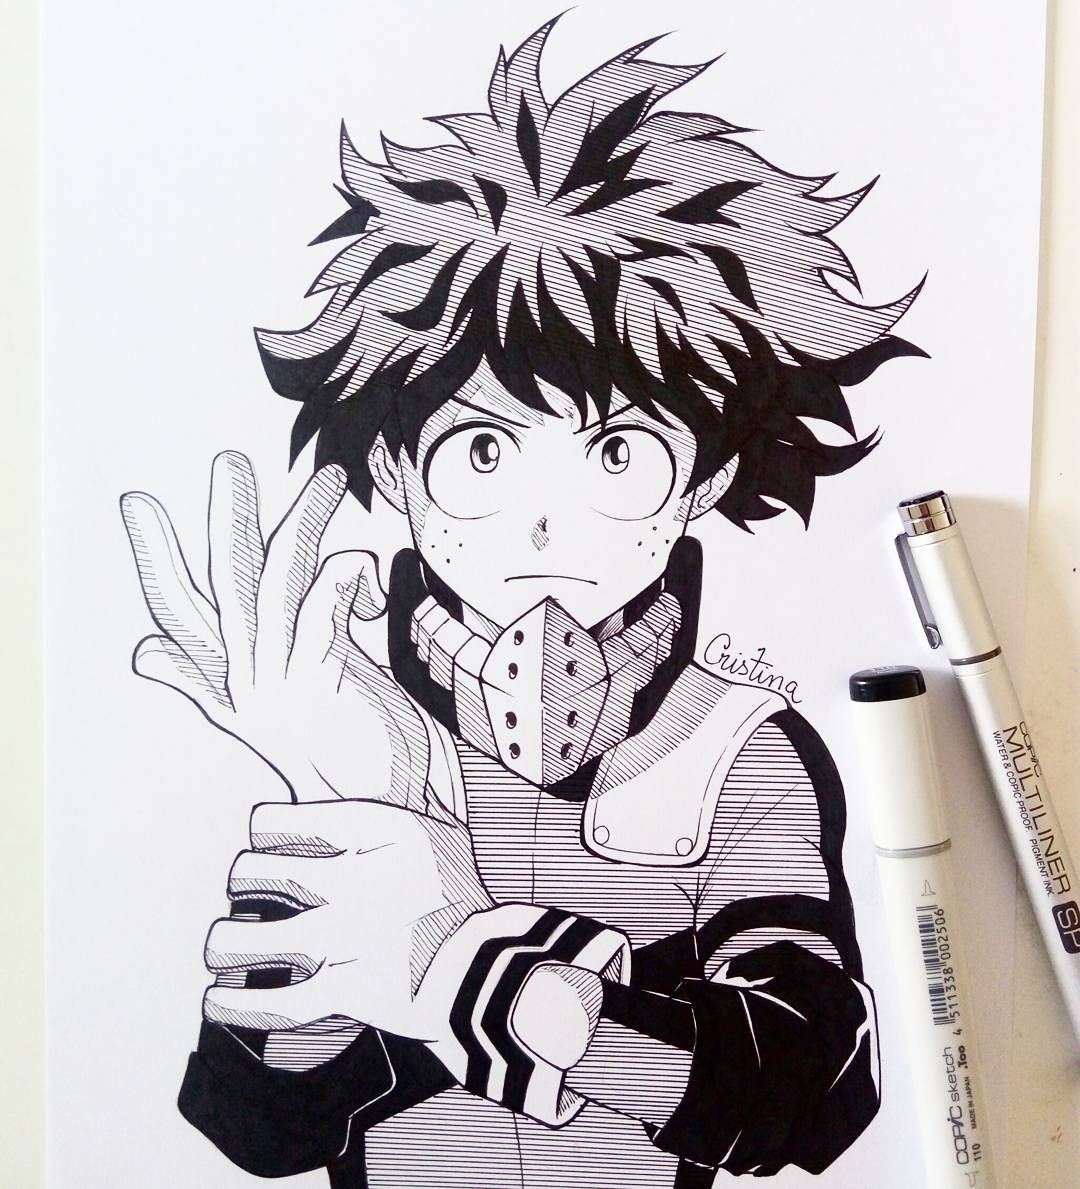 Izuku Done What You Think Hope You Like Izukumidoriya Izuku Copicart Copicsketch Copic Anime Sketch Copic Sketch My Hero Academia Manga